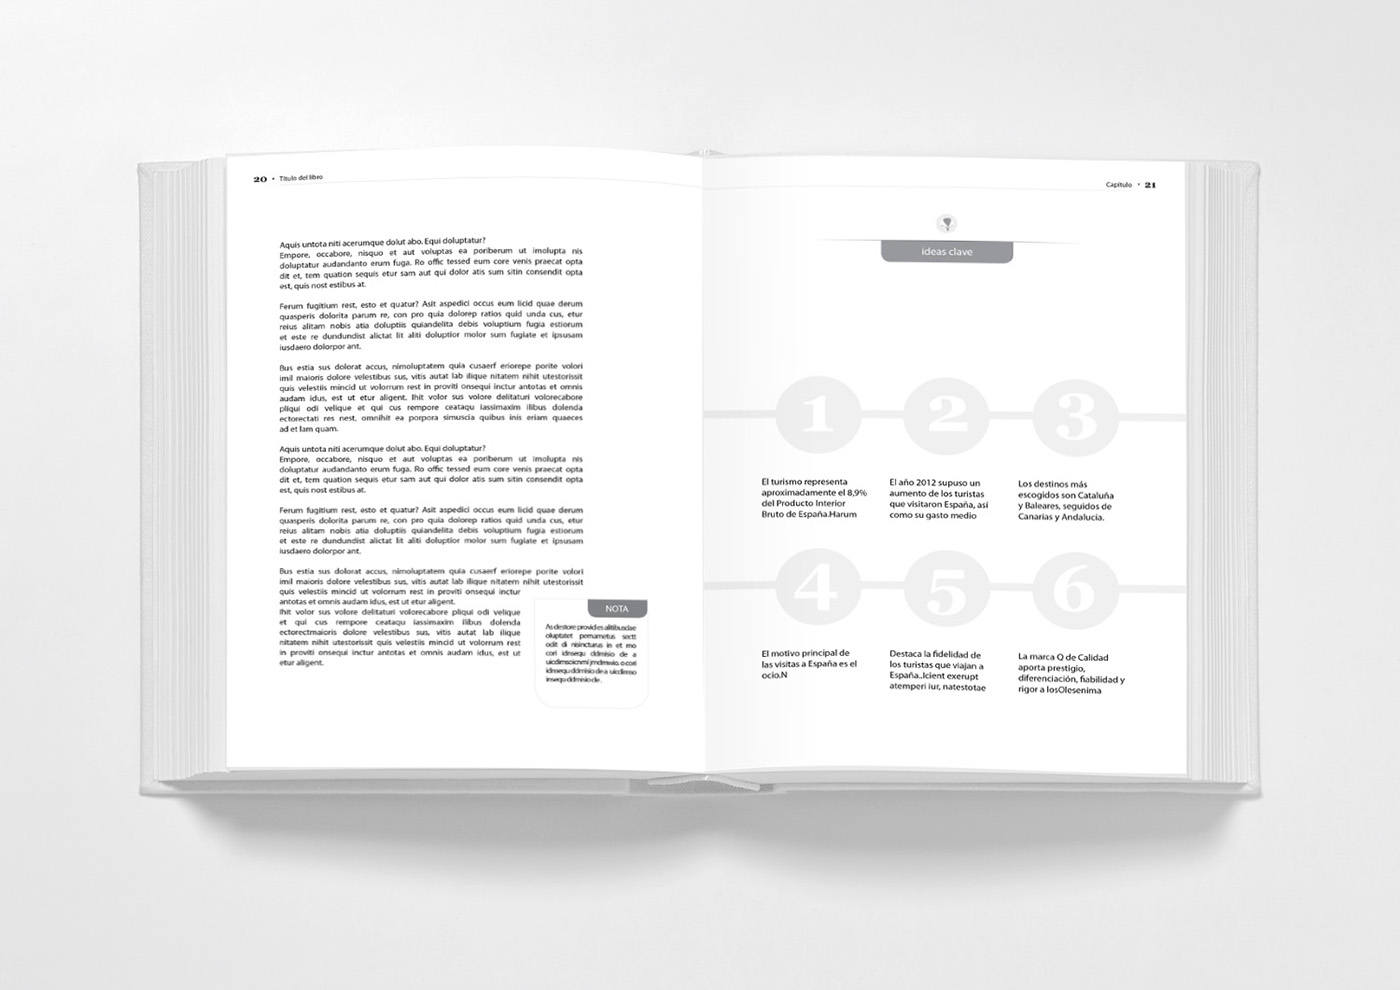 manual guts cover editorial student White icons book